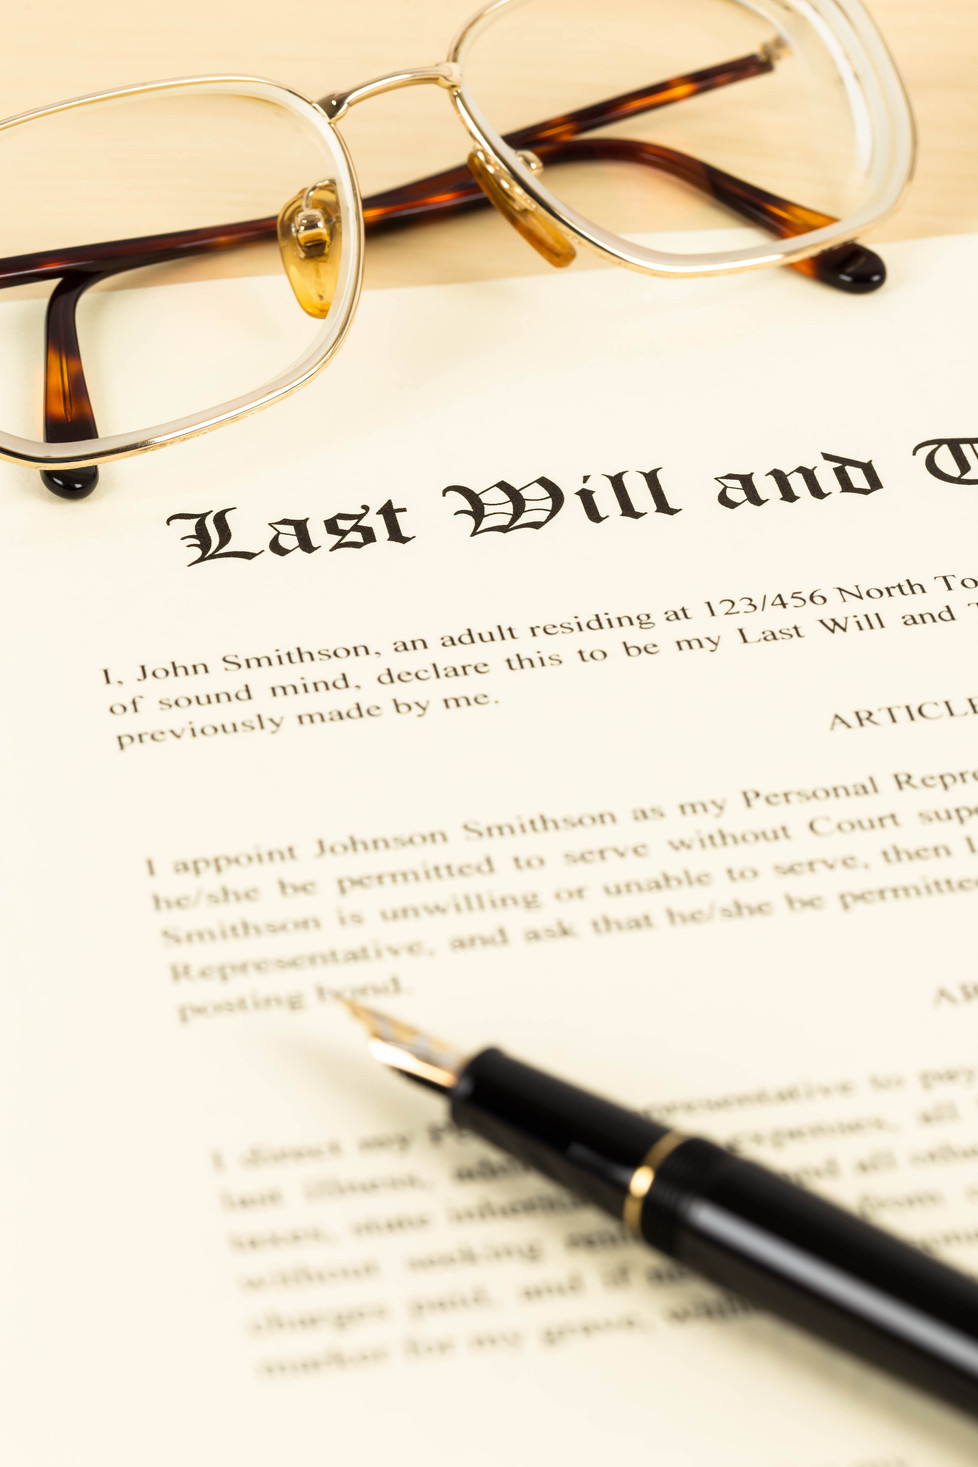 Strategic Estate Planning In Uncertain Times